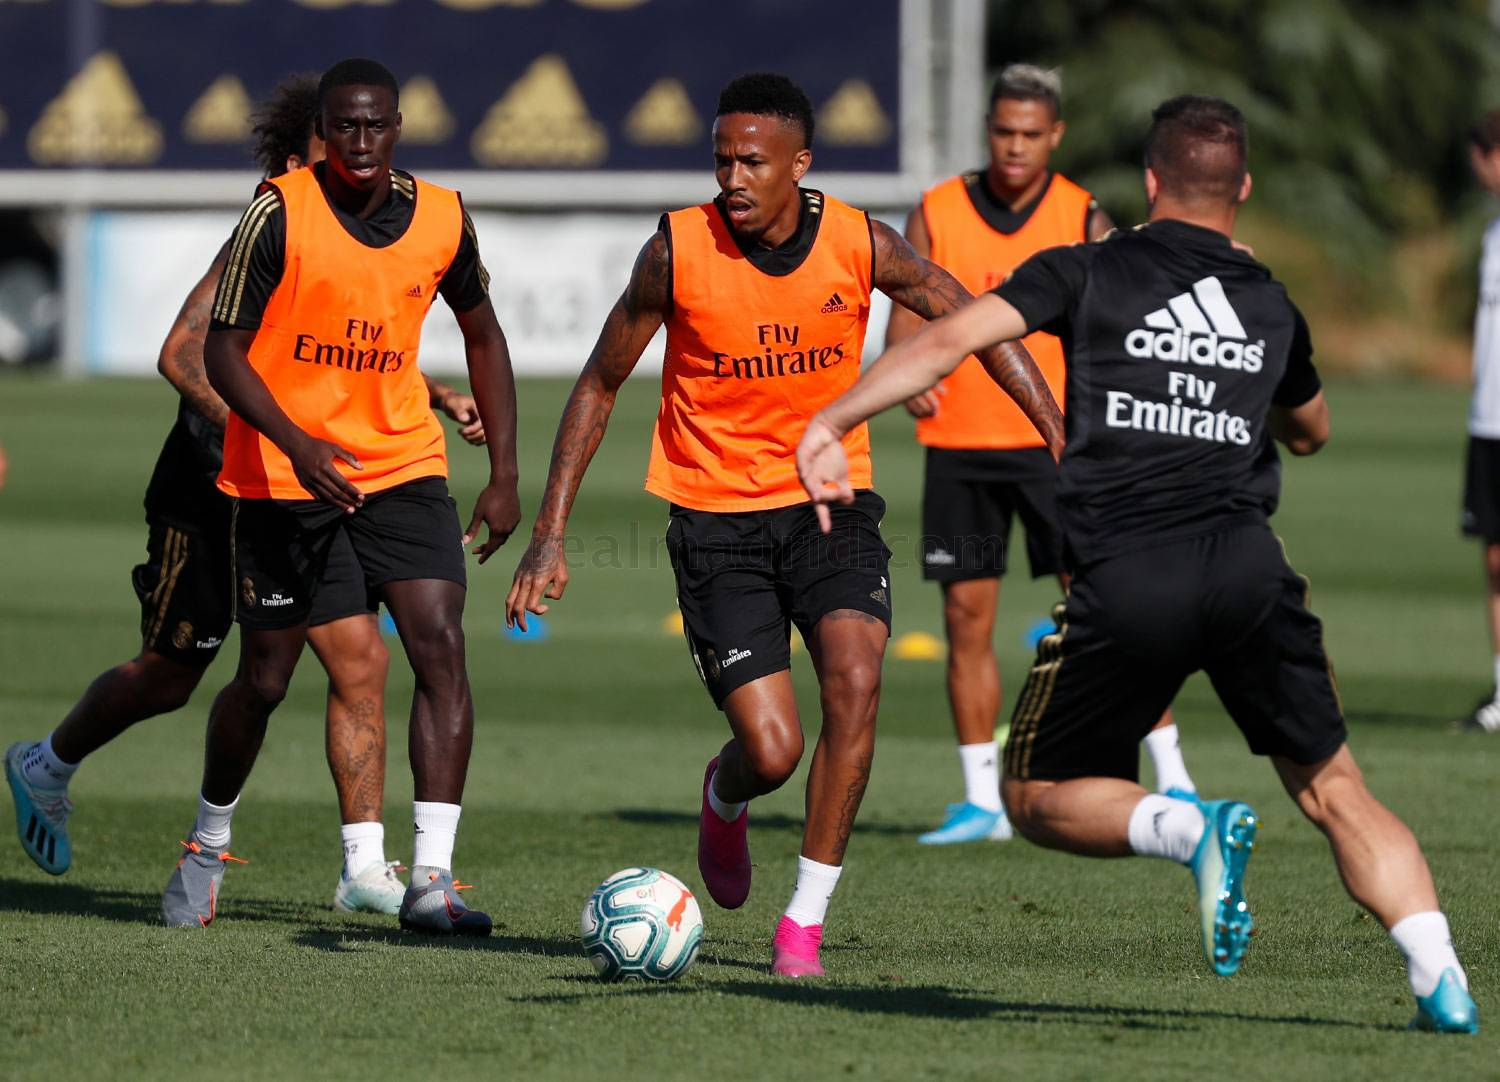 Real Madrid - Entrenamiento del Real Madrid  - 31-08-2019